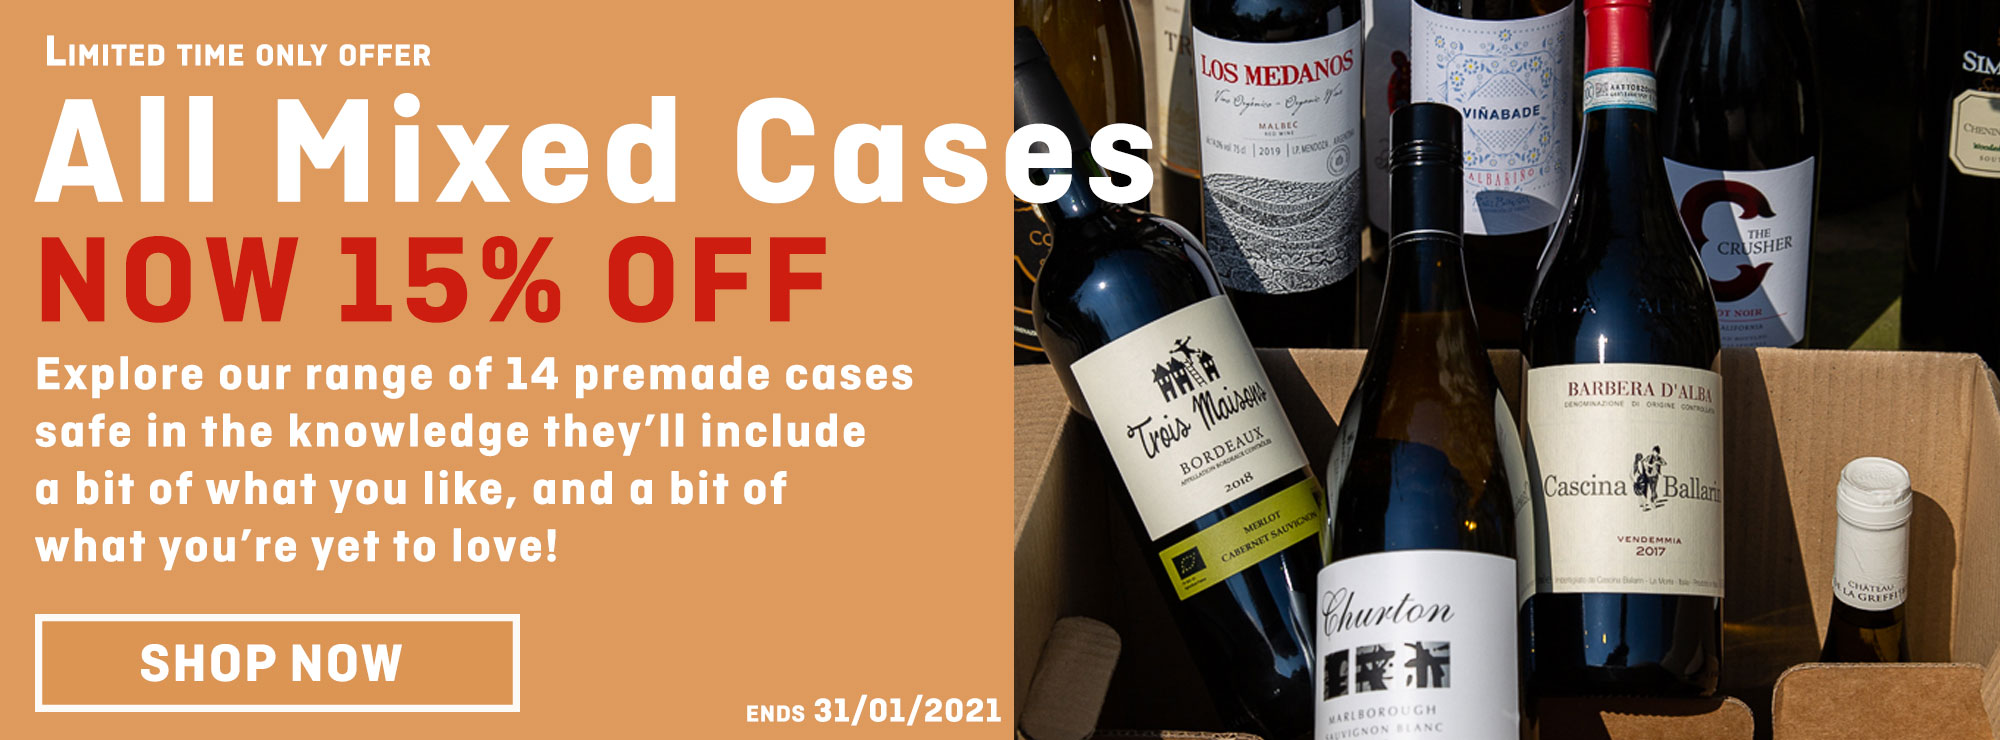 15% off mixed case